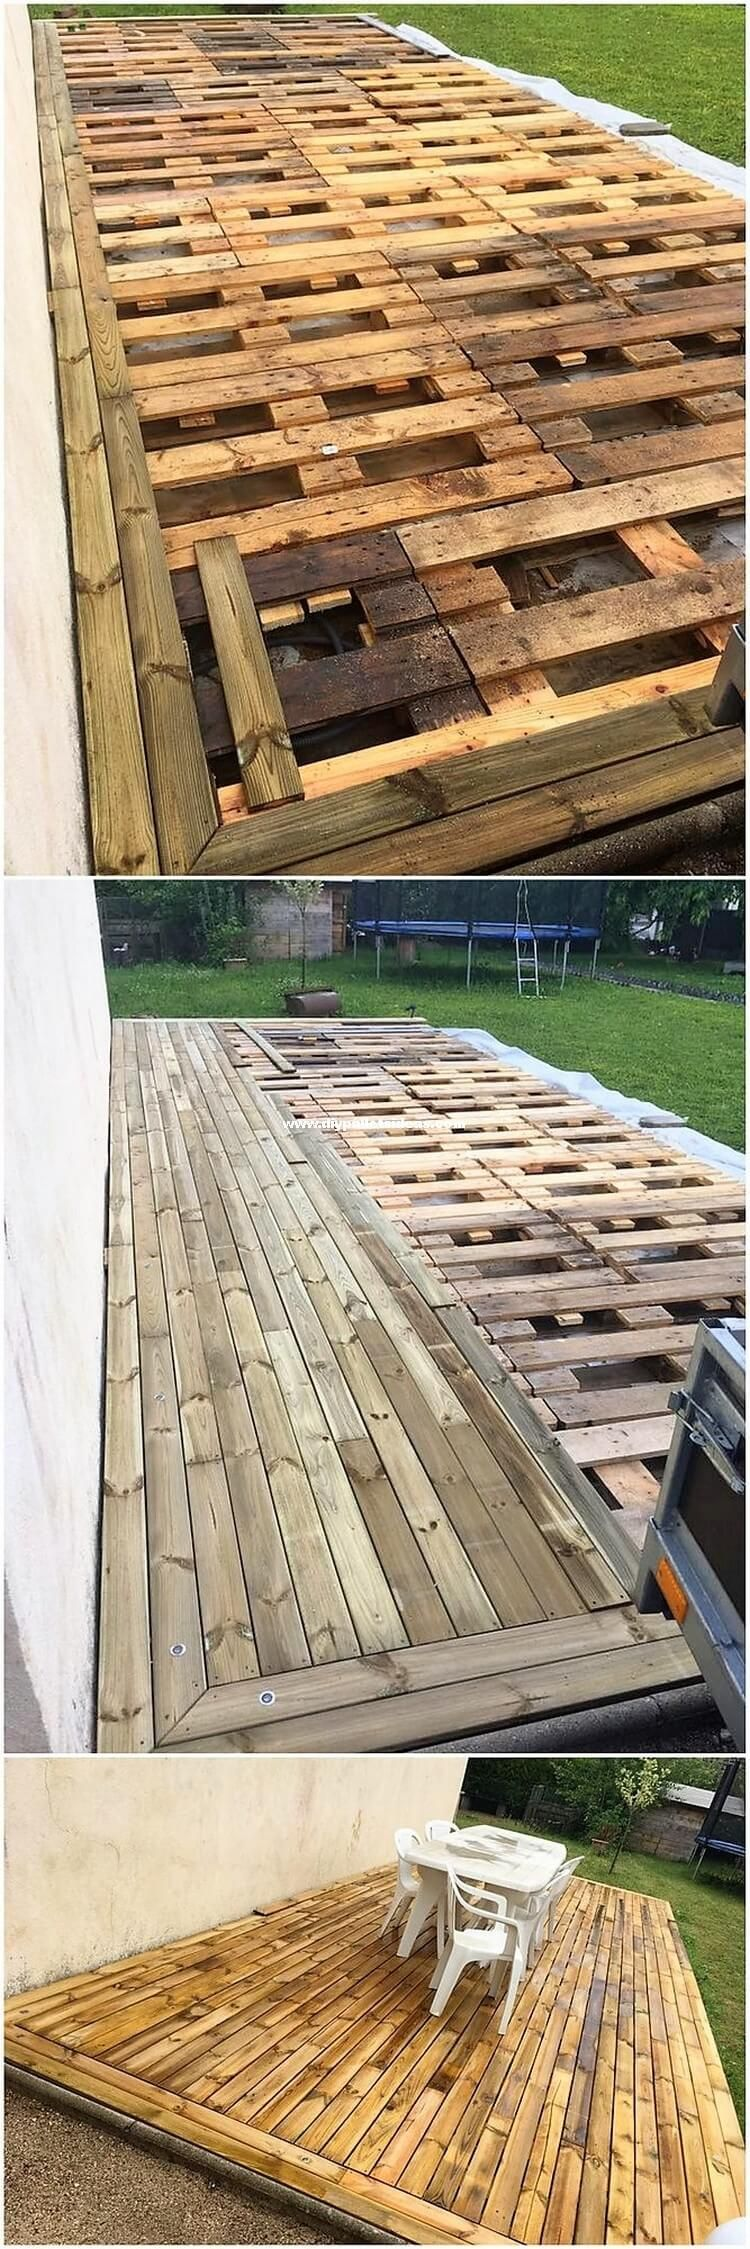 DIY Pallet Ideas and Pallet Furniture Designs This is one of the amazing idea of using the recycle wood pallet material in the garden terrace view as for the house garden areas. This idea is all comprised with the alternatives that is settled with the portions of the wood on the whole surface being part of it.This is one of the amazing idea of ...